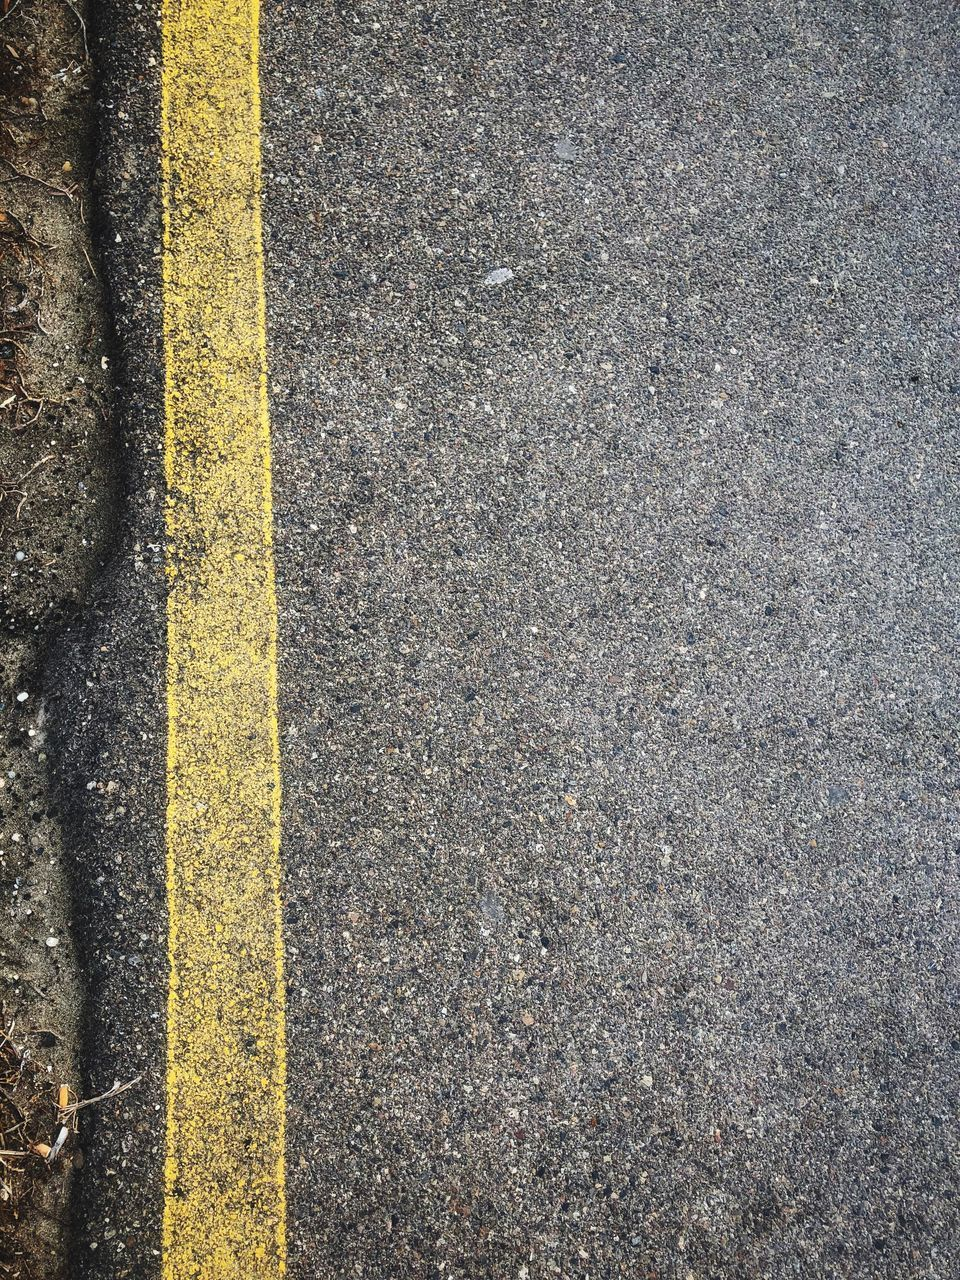 HIGH ANGLE VIEW OF YELLOW ROAD MARKING ON STREET